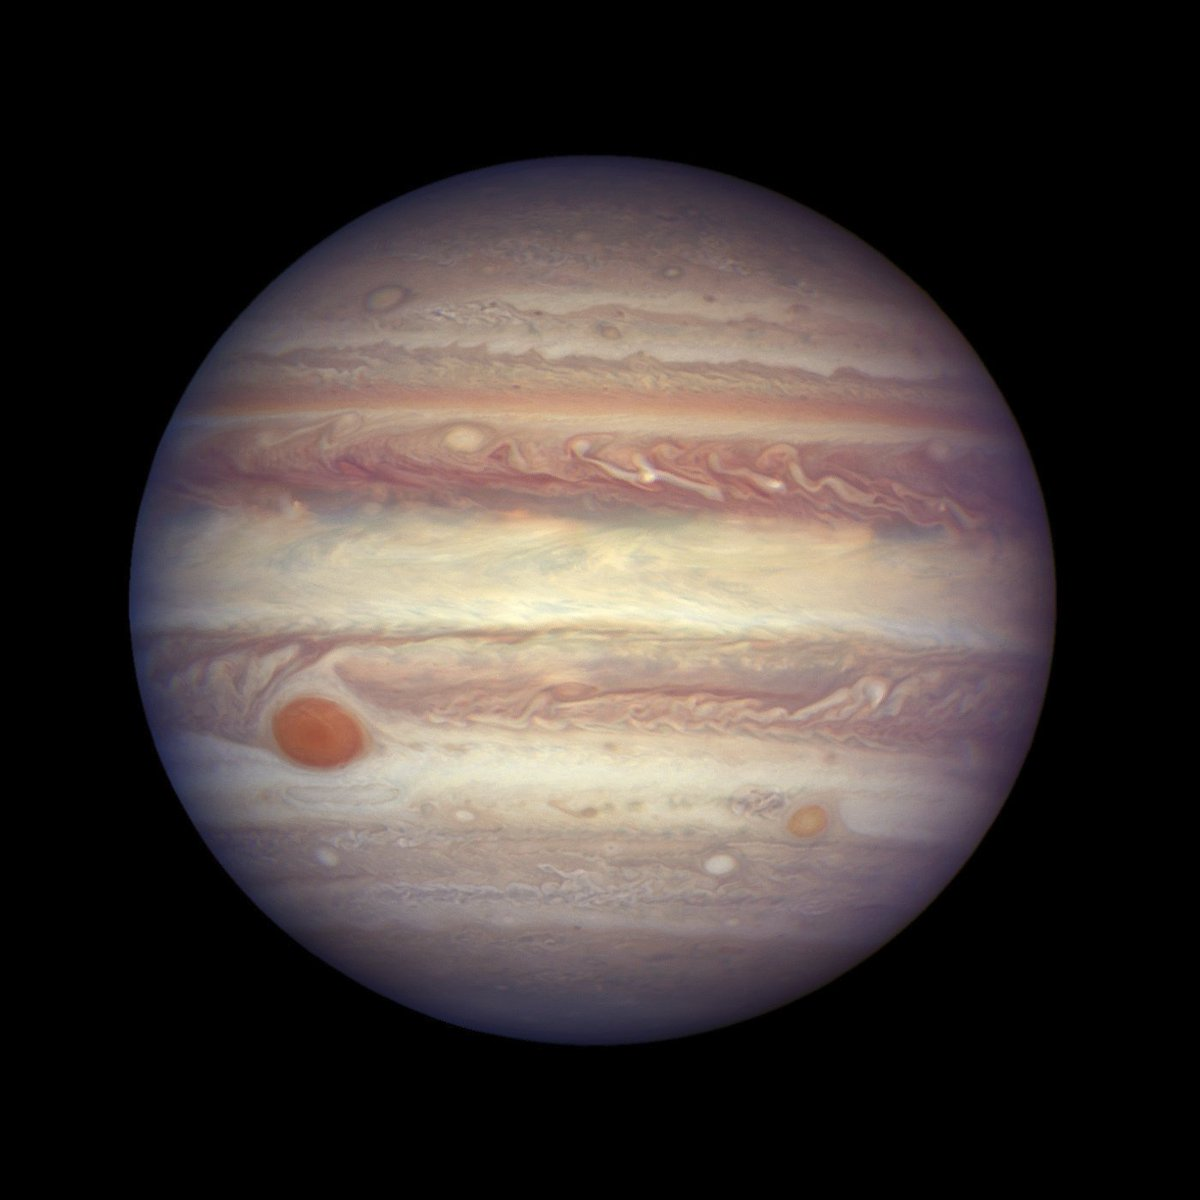 Scientists discovered 12 new moons orbiting Jupiter. The giant gas planet now has 79 known moons, more than any other planet in the solar system 🌝